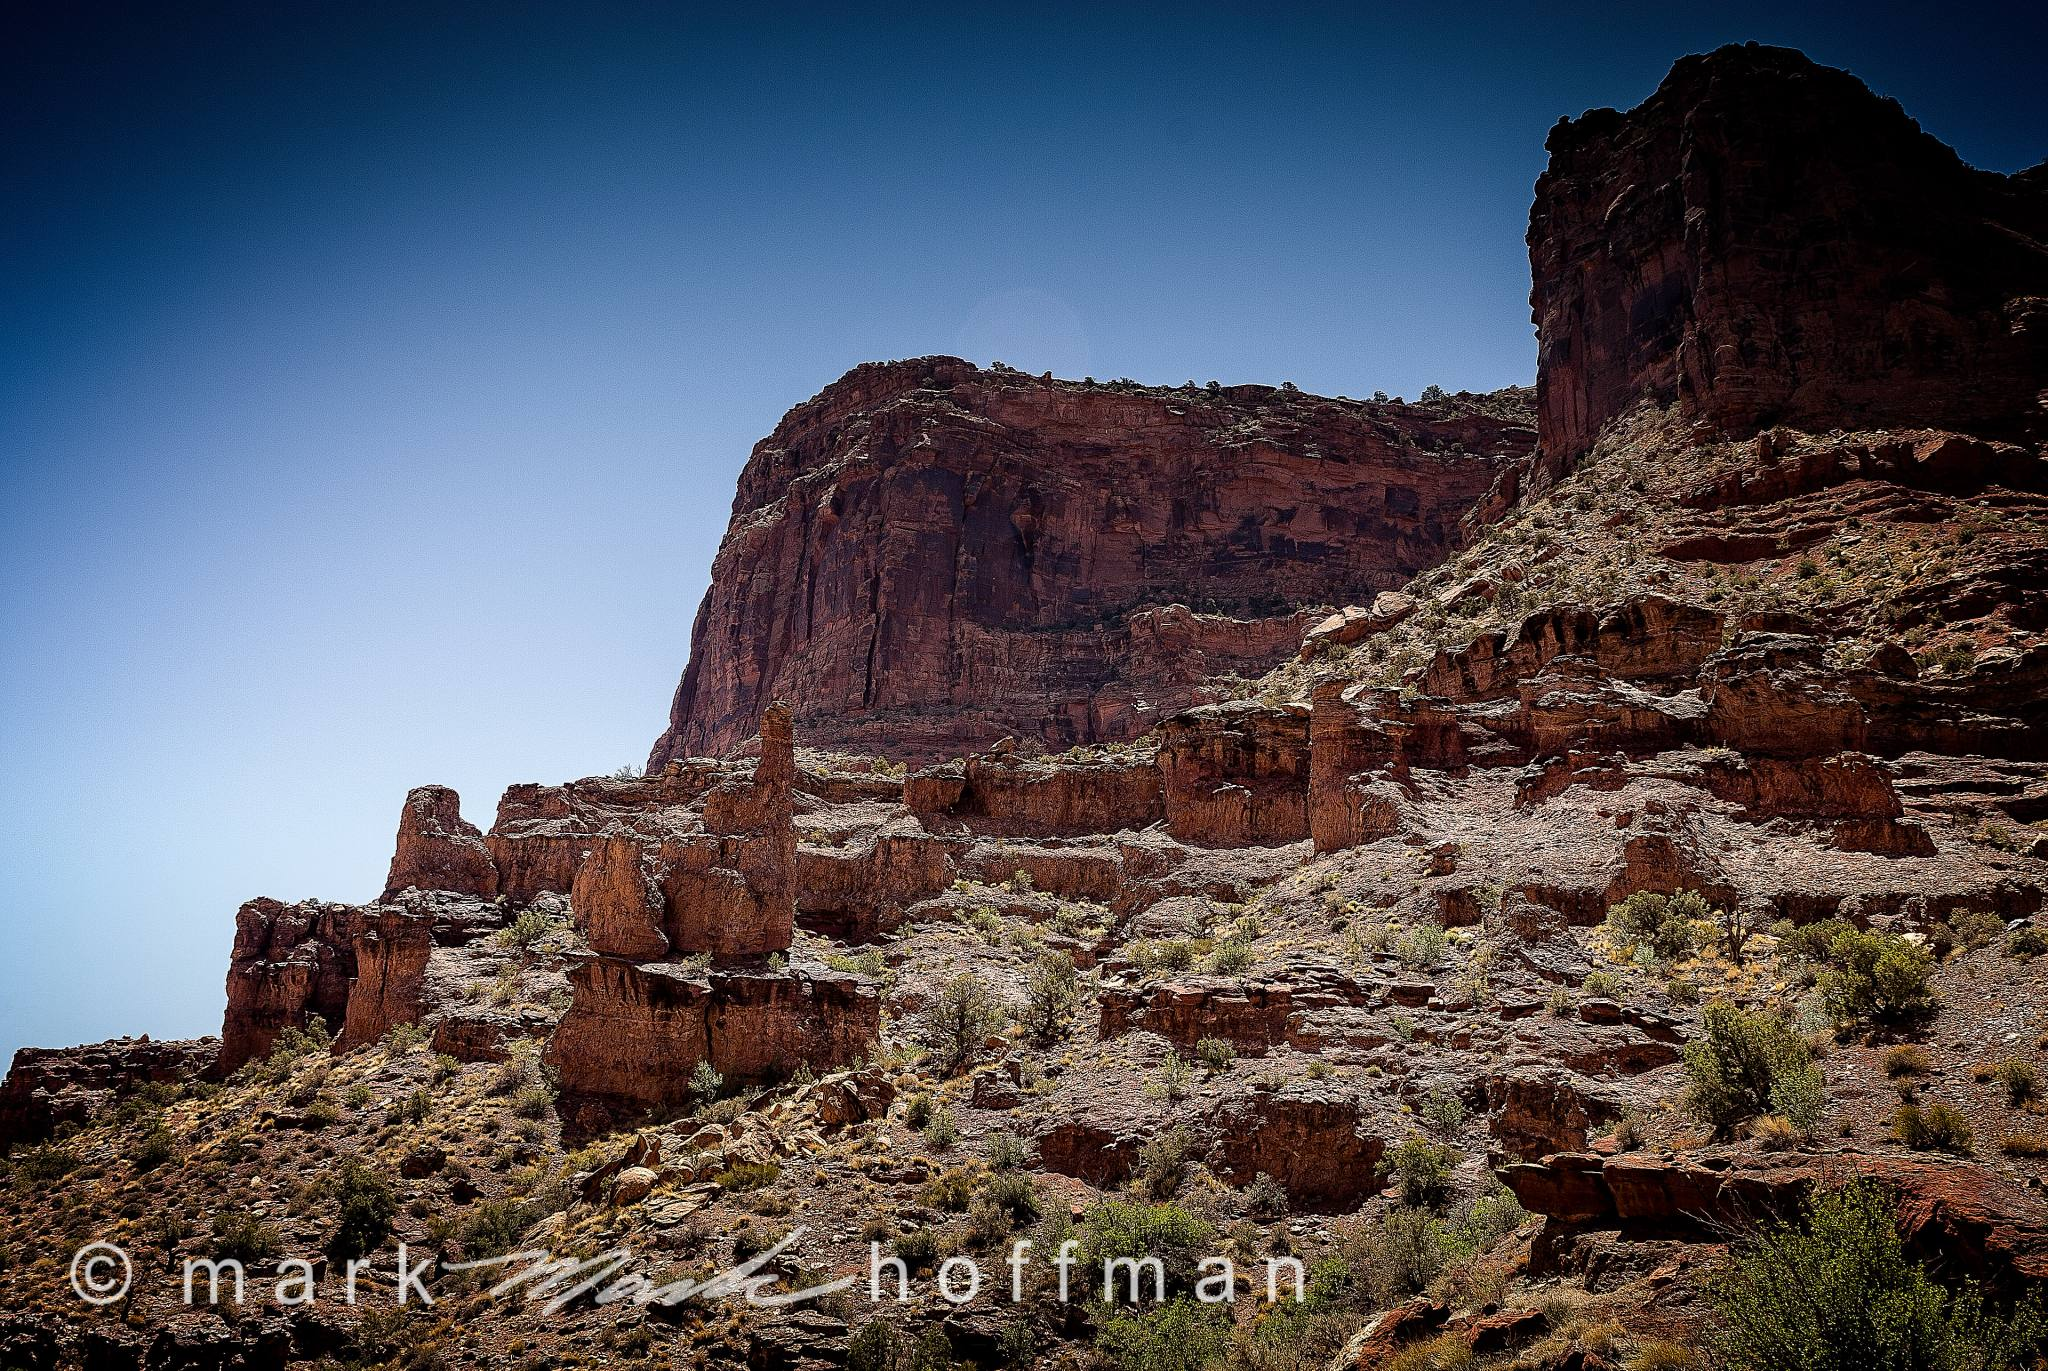 Mark_Hoffman_ND26986_PFX10_cap1_var1.jpg